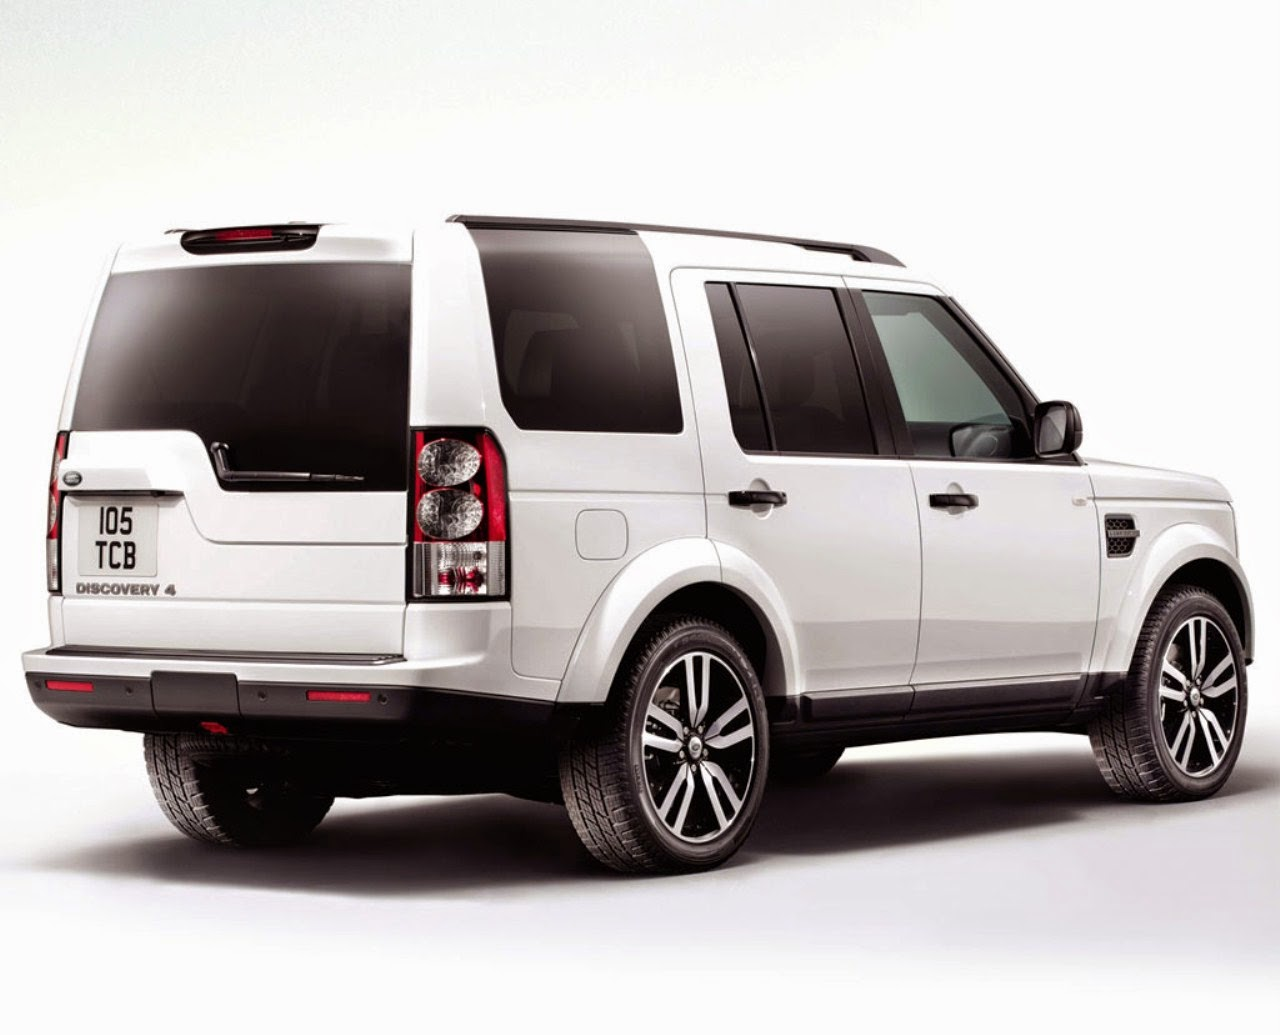 2015 Land Rover Discovery 4 Car Reviews